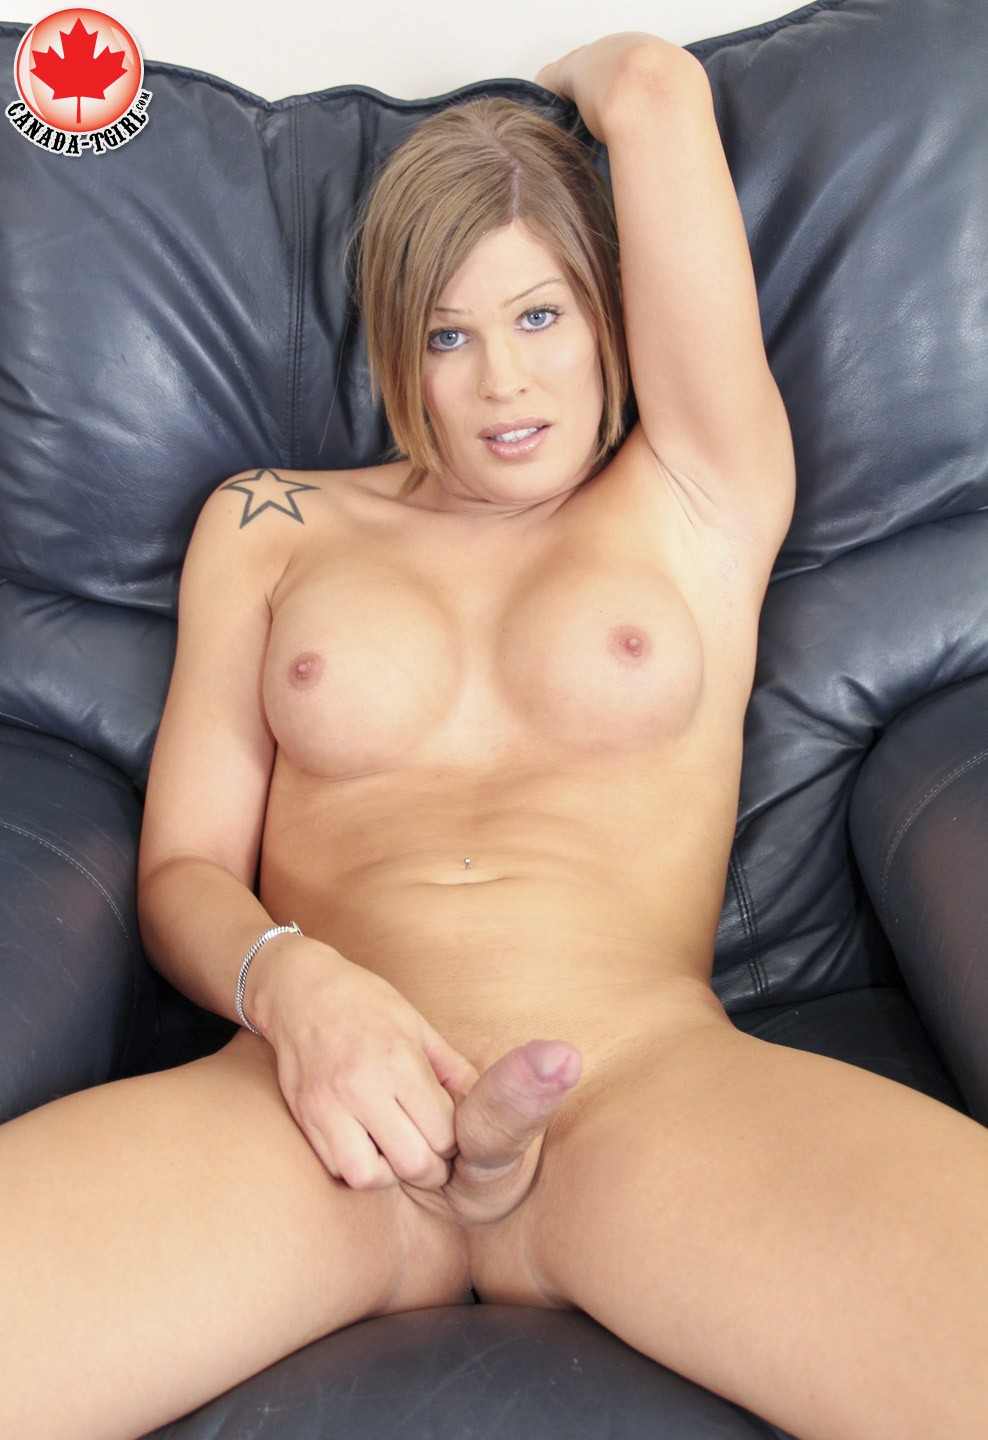 Hot young naked